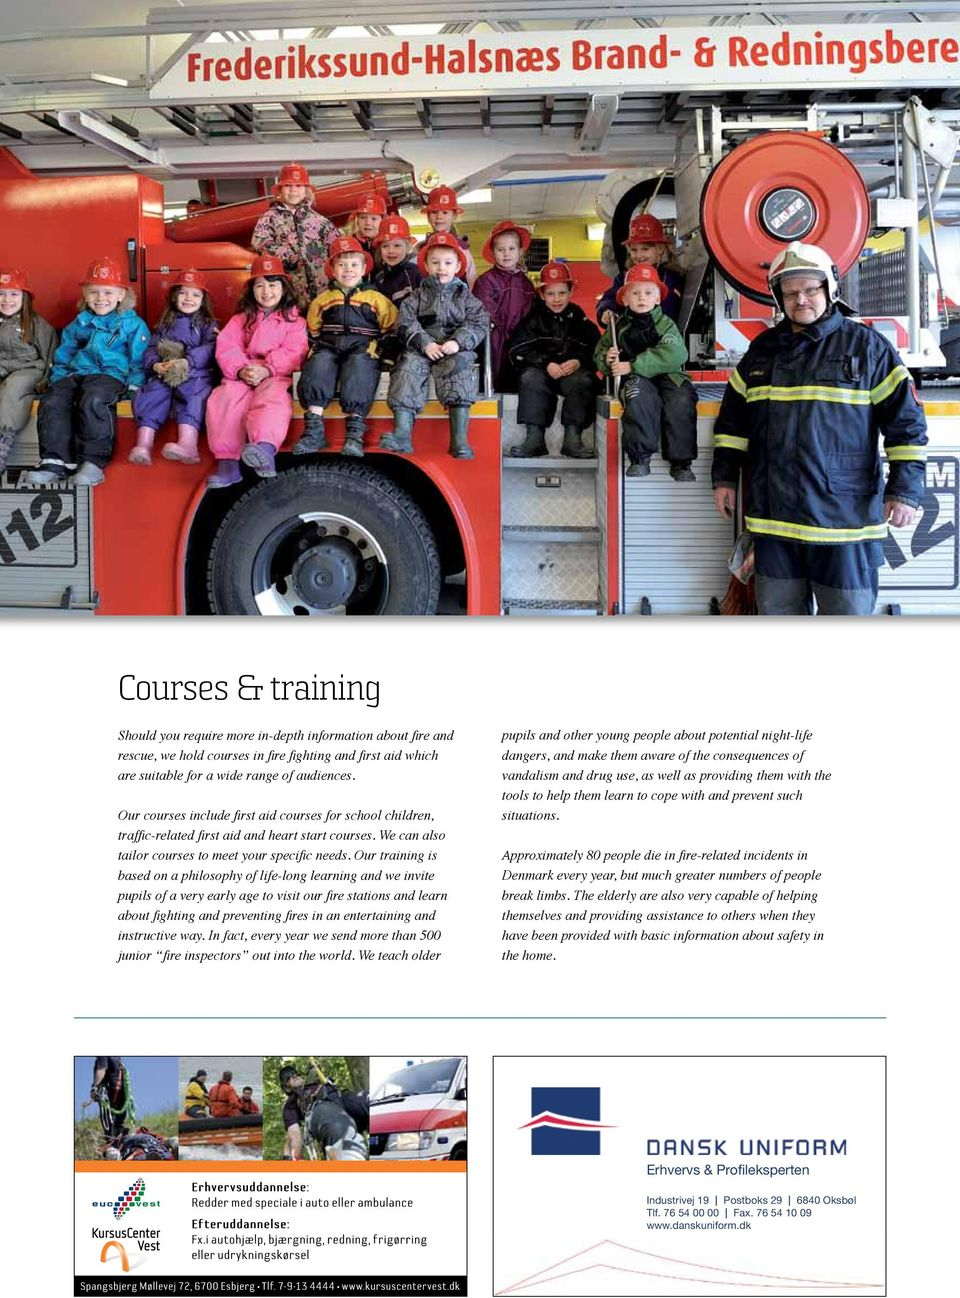 Our training is based on a philosophy of life-long learning and we invite pupils of a very early age to visit our fire stations and learn about fighting and preventing fires in an entertaining and